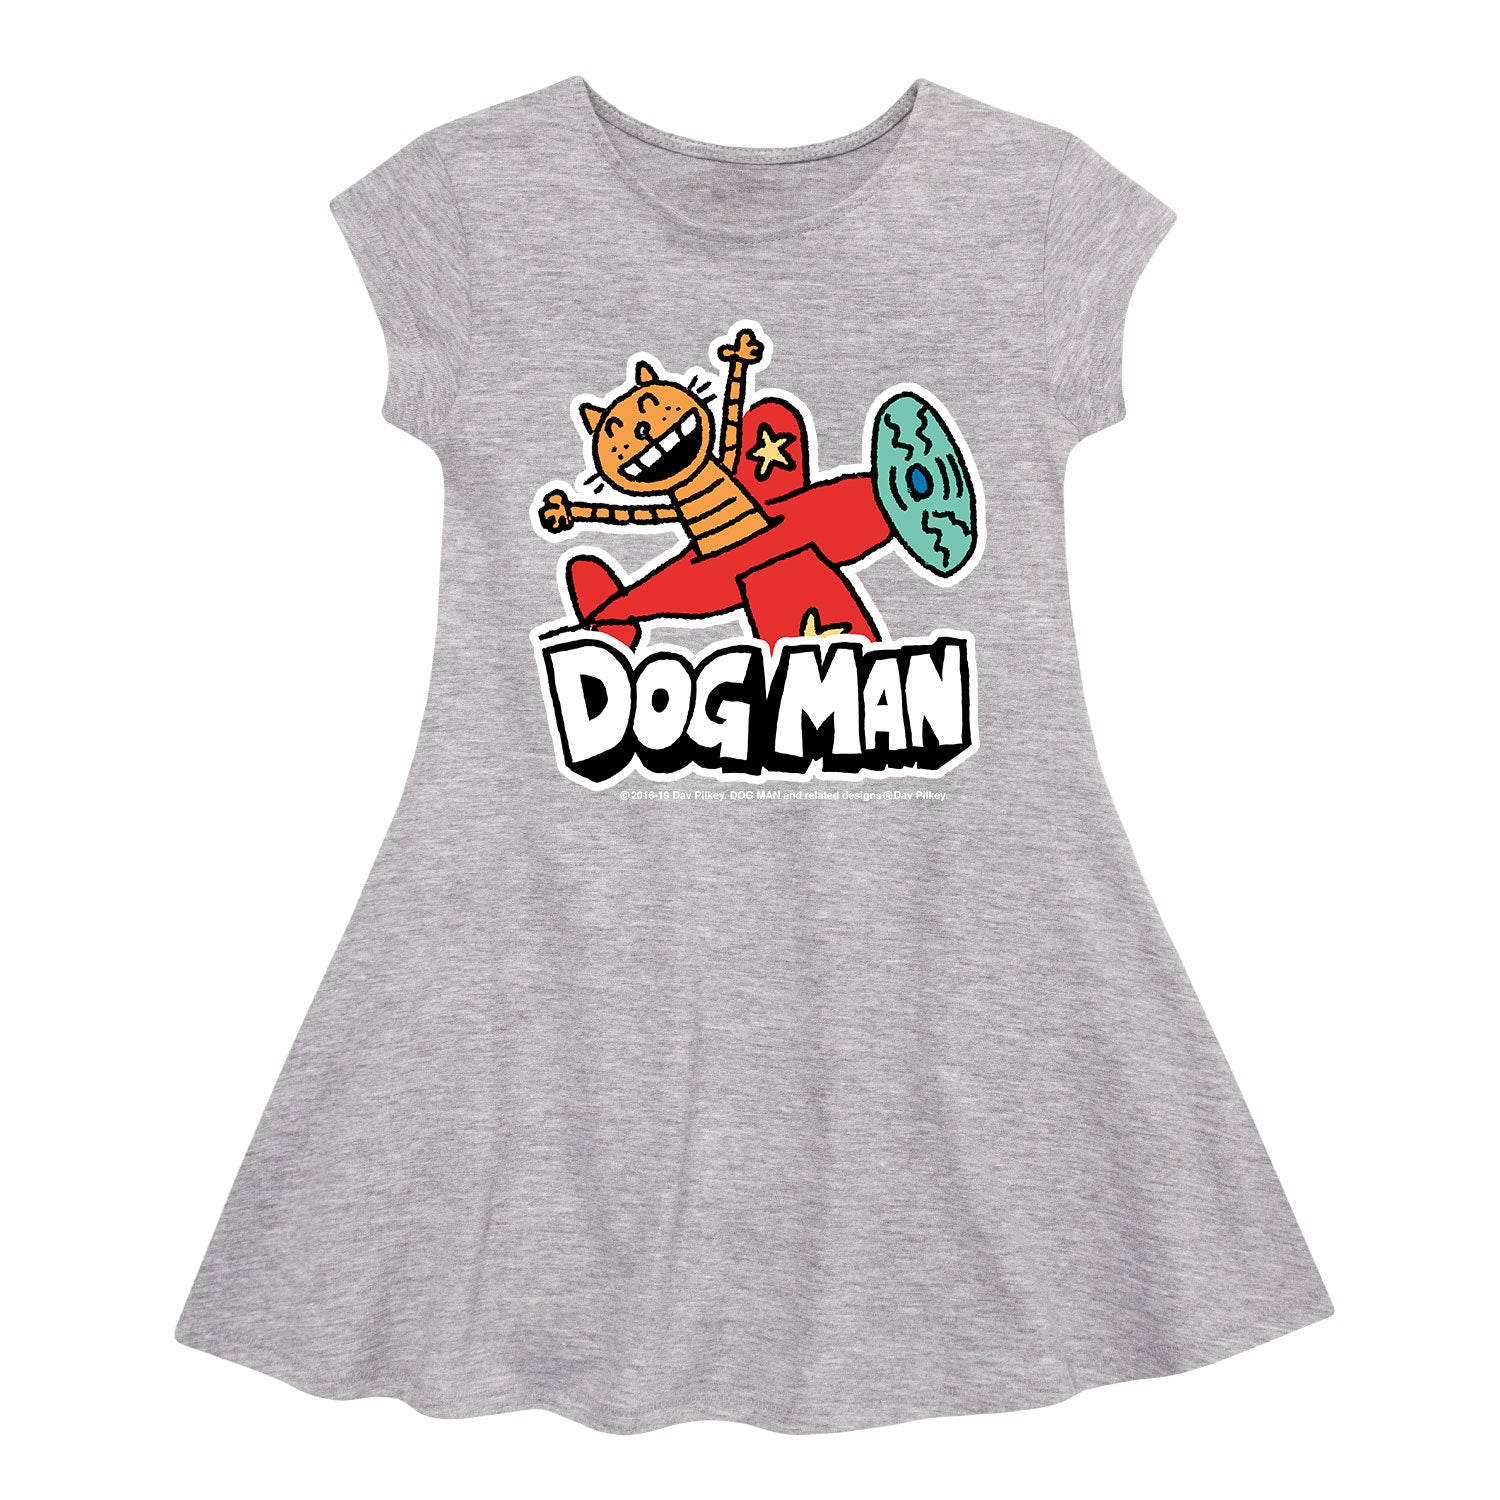 Dog Man - Petey On A Plane - Youth Fit And Flare Dress